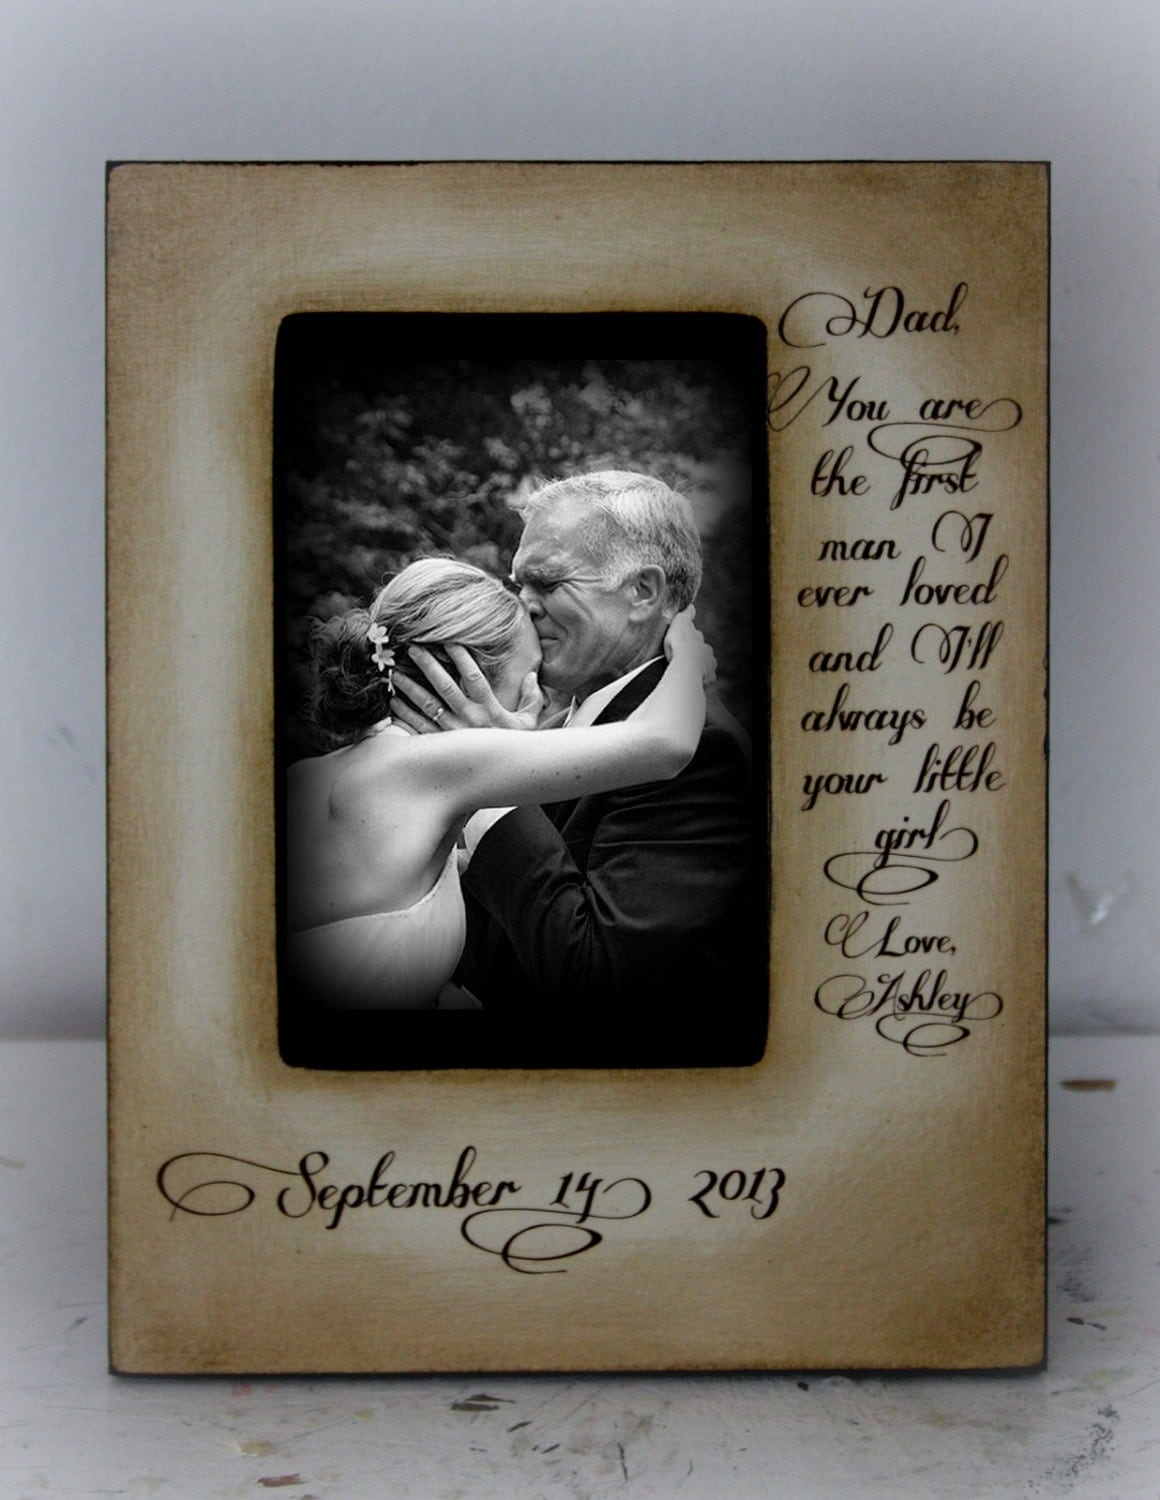 Wedding Gift For Your Dad : Father Daughter Wedding Frame Bride First man I ever loved